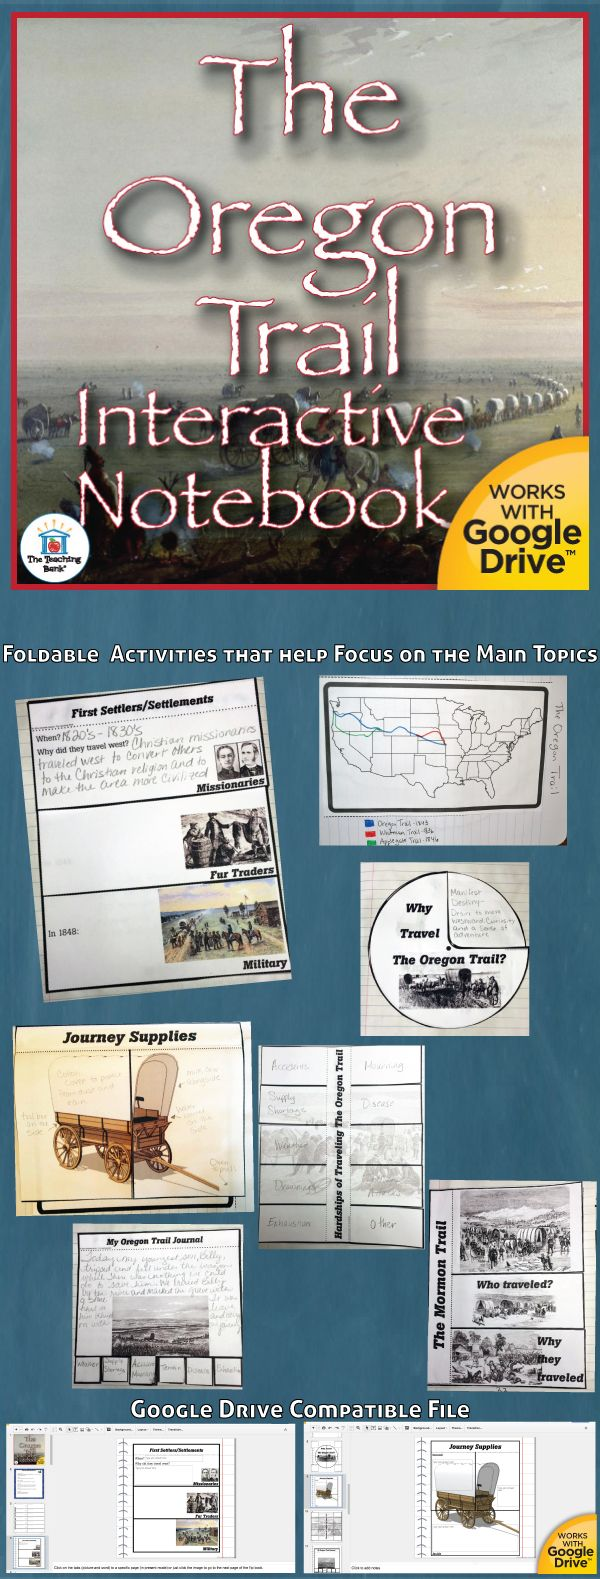 The Oregon Trail Interactive Notebook